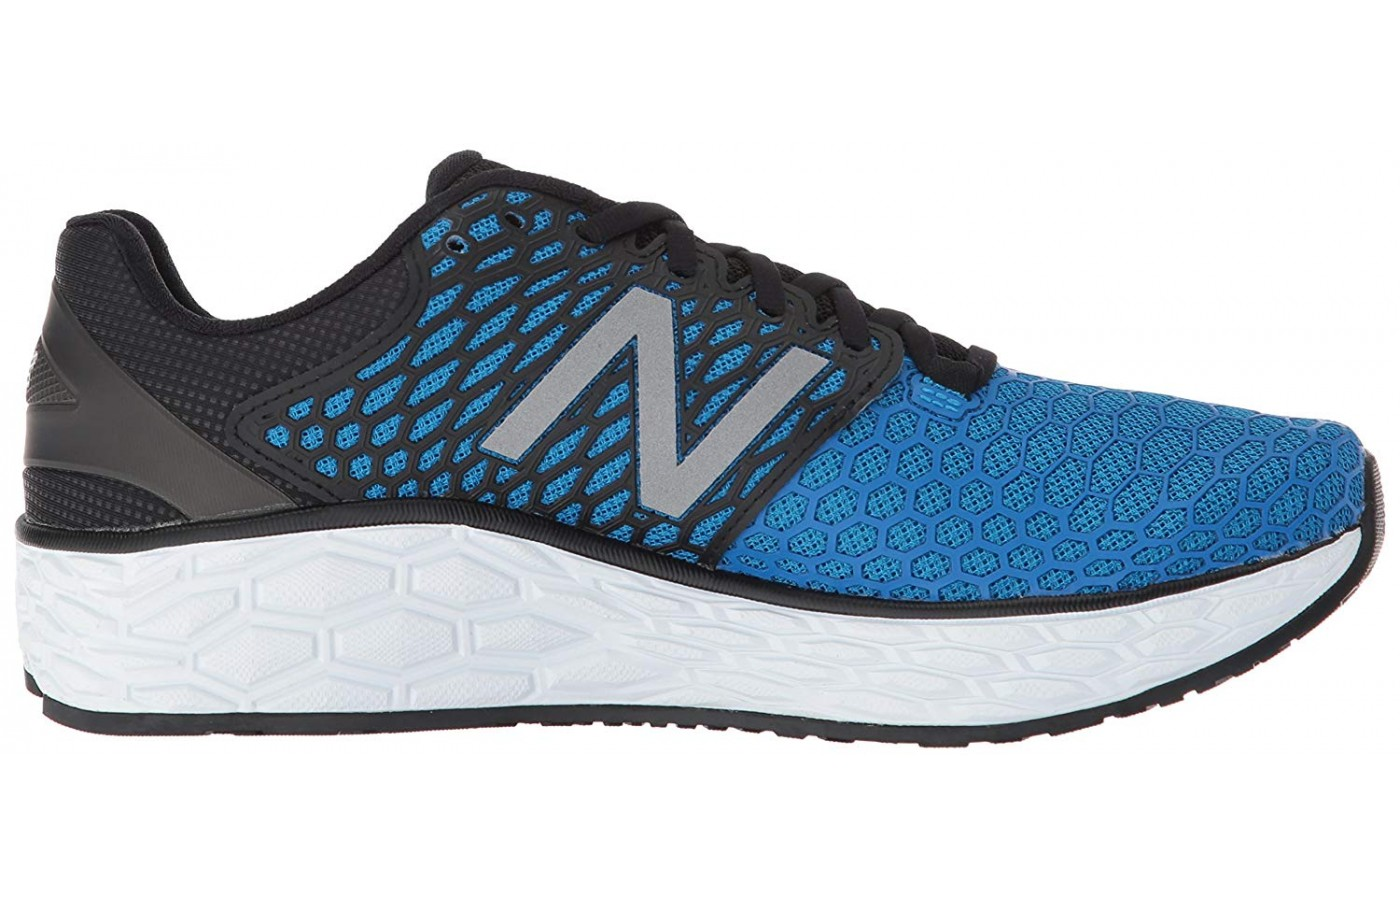 The New Balance Fresh Foam Vongo V3 shown from the side